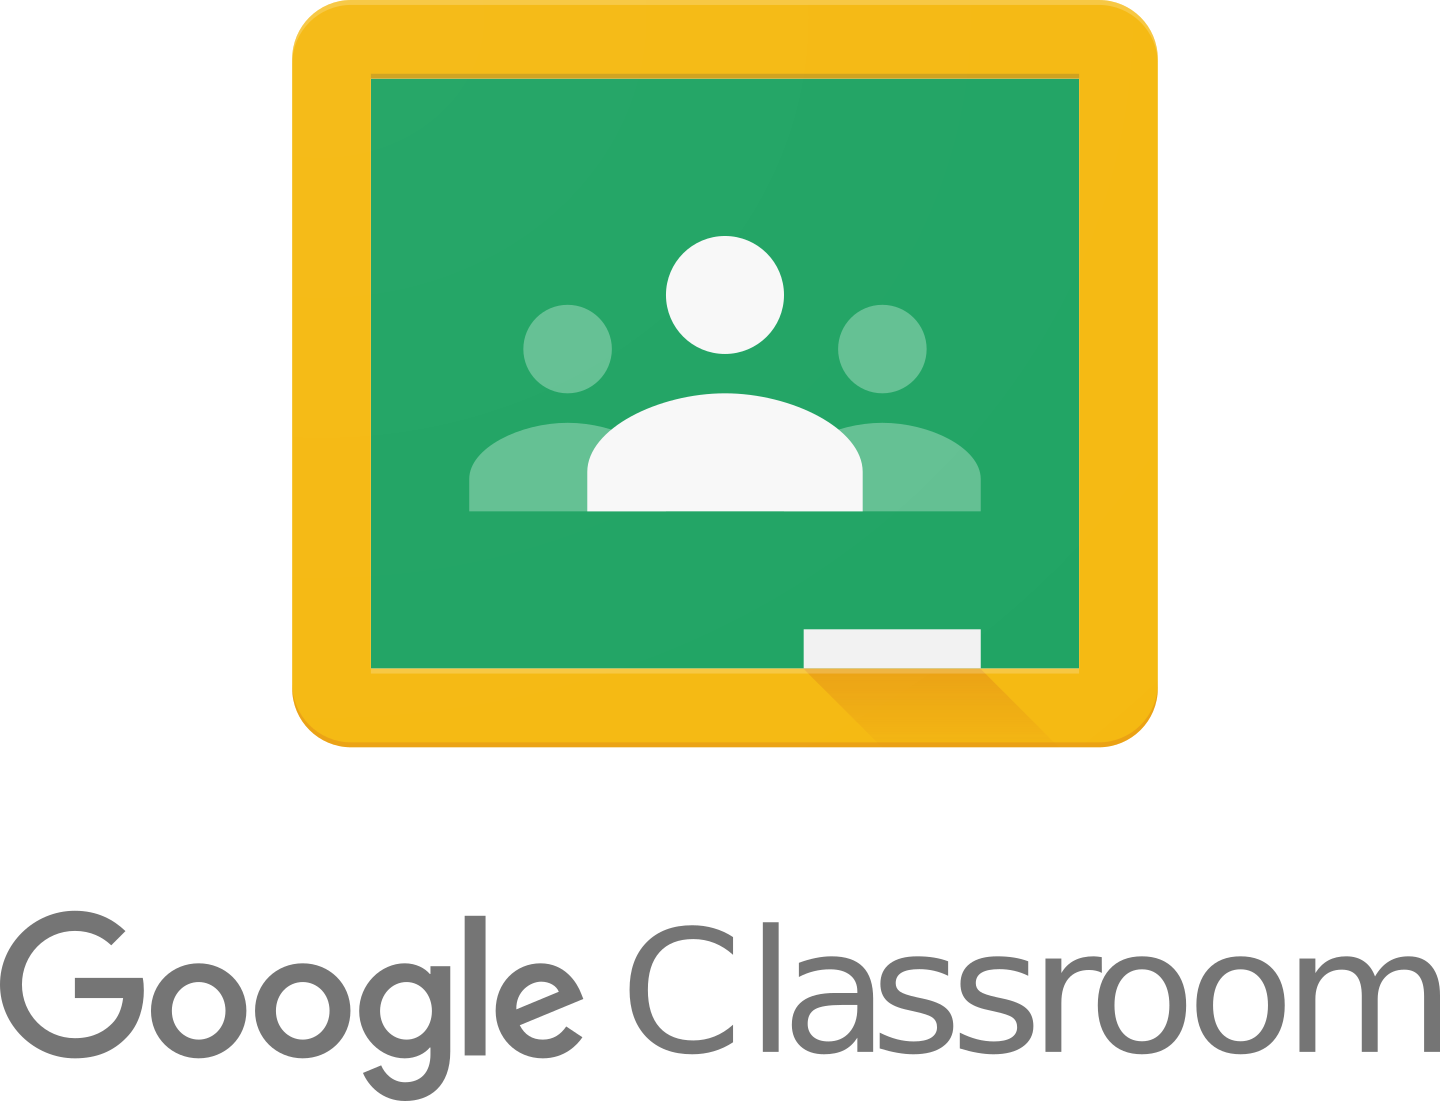 Google Classroom Logo - PNG and Vector - Logo Download